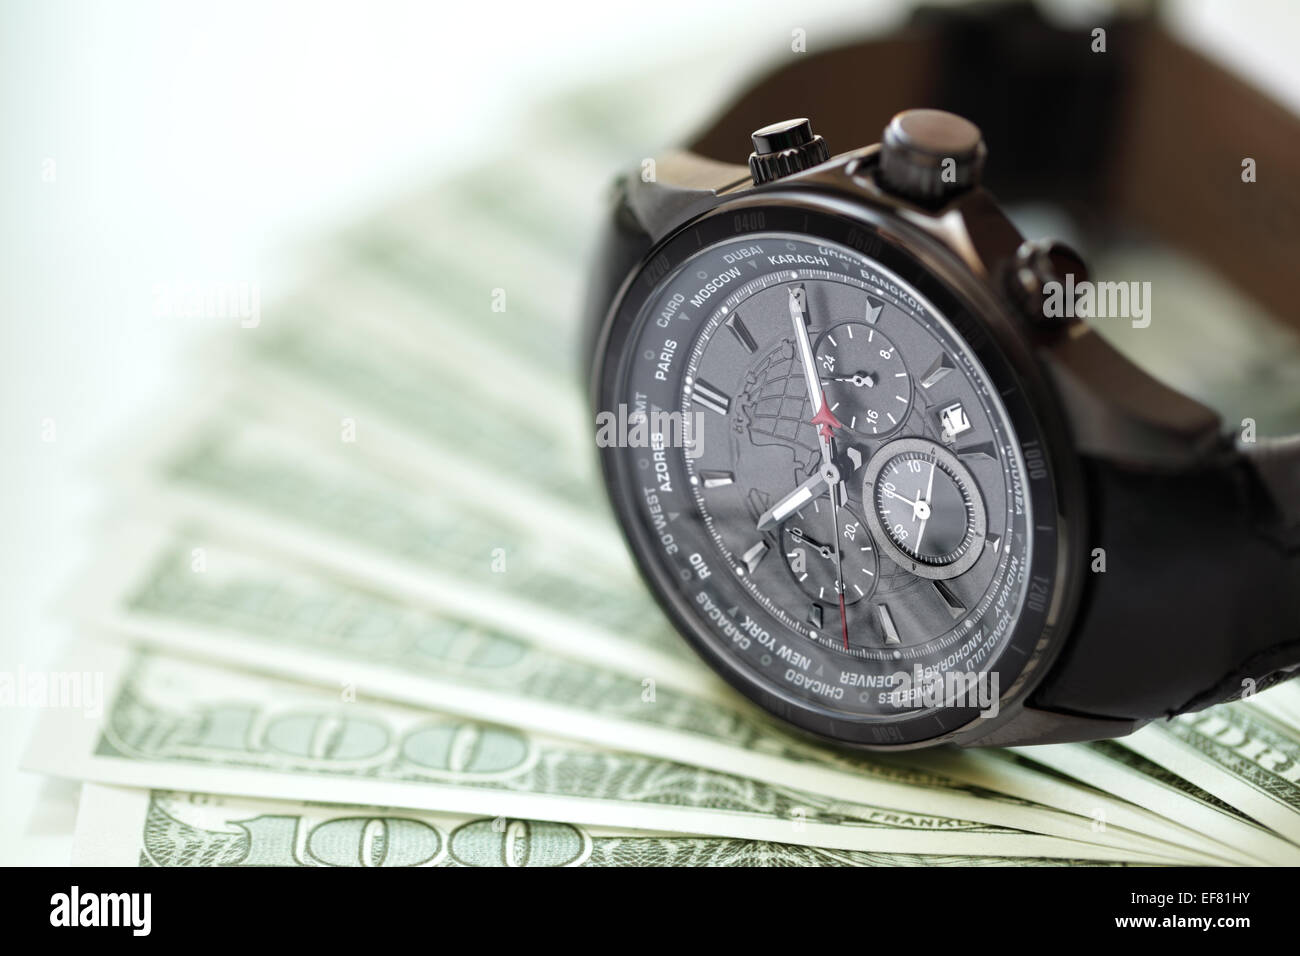 Watch and money concept for business investment or time is money - Stock Image